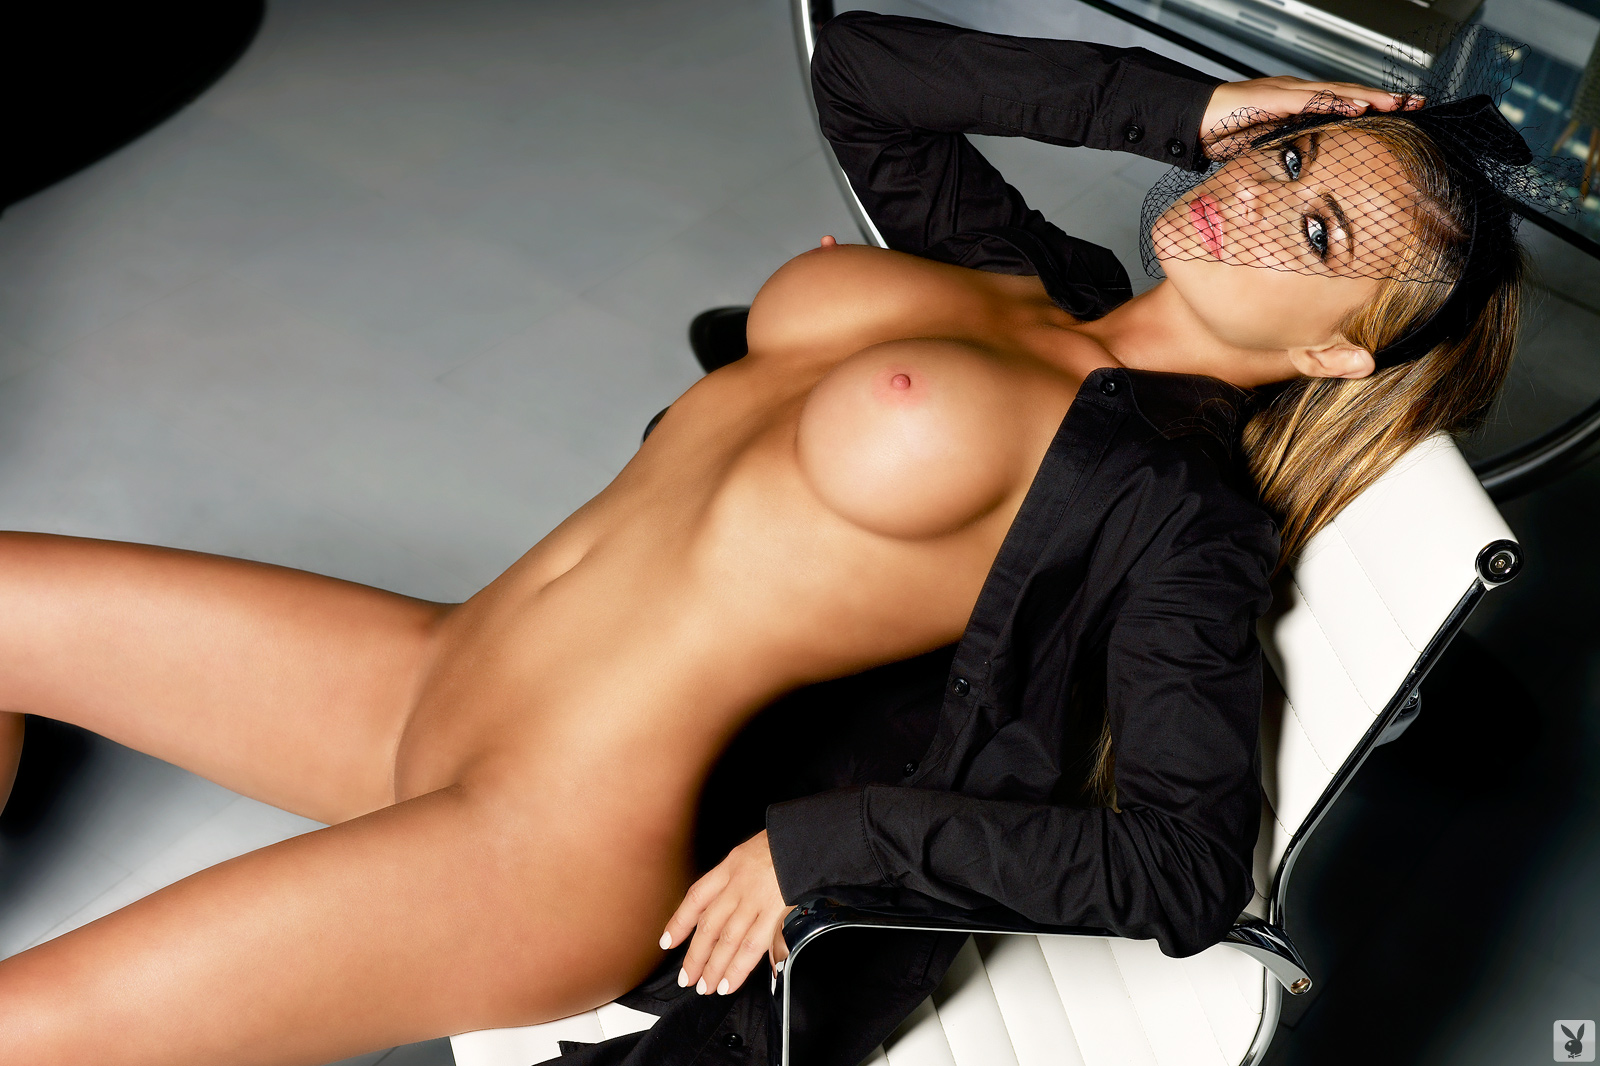 Nude carmen electra photos bad taste